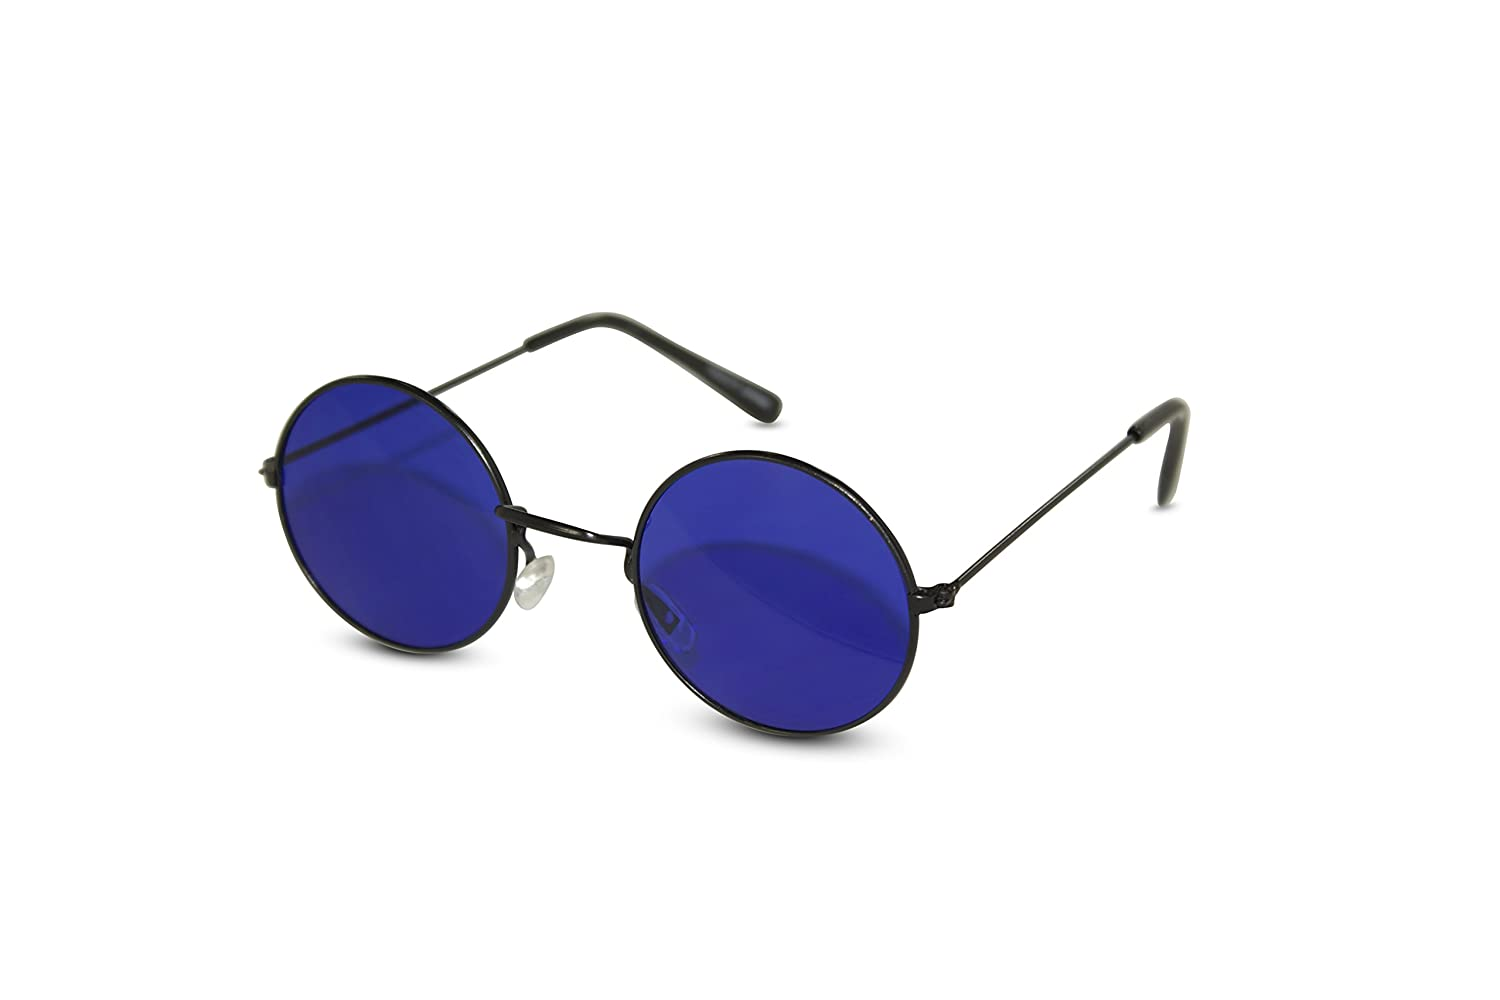 47457a64484d Amazon.com  John Lennon Sunglasses Round Hippie Shades Retro Colored Lenses  Retro Party (Black frame w  Blue Lens)  Shoes